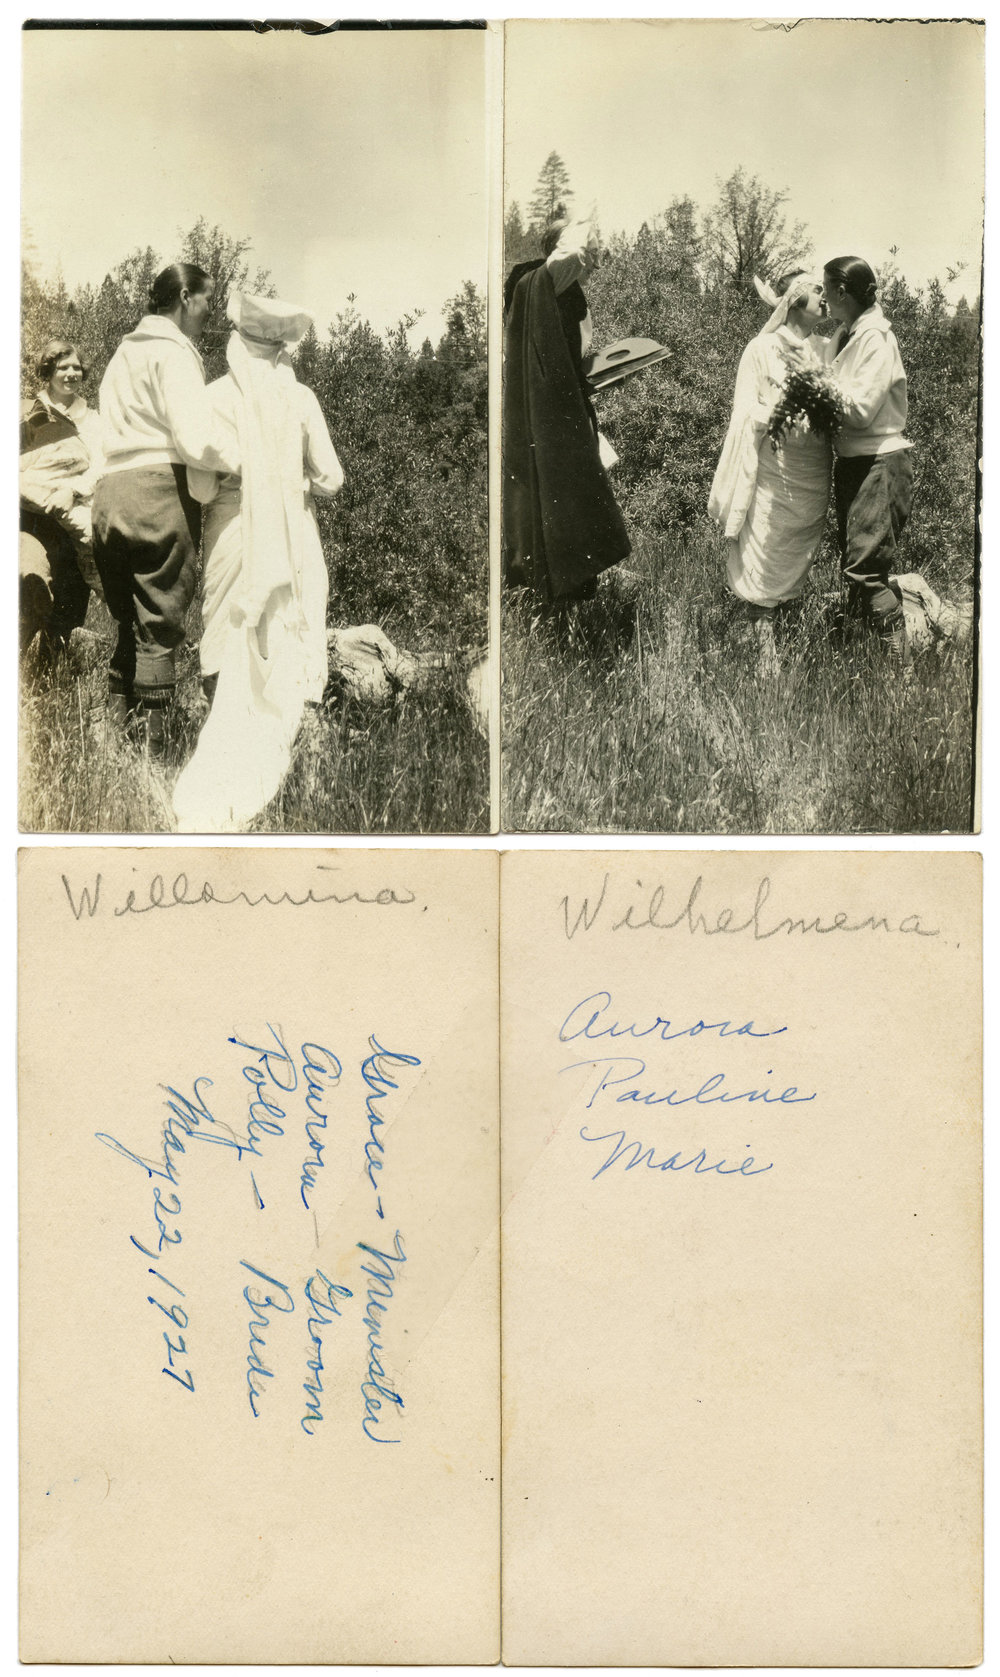 """""""Grace - Minister, Aurora - Groom, Polly - Bride."""" B&W silver prints. May 22, 1927, 4.25"""" x 5"""" (pair).  Found in Philadelphia, PA   Part of the challenge and delight of dealing with orphaned/found photos is the uncertainty that comes along with identification and interpretation. I spent time discussing these images in class several months ago with my peers. Some observations that have only produced more questions:  The tape does not appear to be terribly old, as it has not yellowed or cracked; Upon magnification, the minister, Grace, is seen holding an album of audio records; The spellings of Willamina and Wilhelmena: was this a simple spelling mistake? Perhaps the recipient or creator of the images?; Is this an instance of early gay marriage or is it a performance of some sort?; Does the distinction between Polly and Pauline correlate with that of Willamina/Wilhelmena in some way?; Was Marie a witness and/or friend?  These are all things that would have to be considered in attempting to ID the who, what, and where, of this photo. Assumptions should never be made, especially with photographs found in archives. More often than not, however, there is some kind of context that helps direct the viewers focus to certain aspects of the image. For now, the precise activities of Grace, Polly, Marie, and Aurora will remain unknown."""